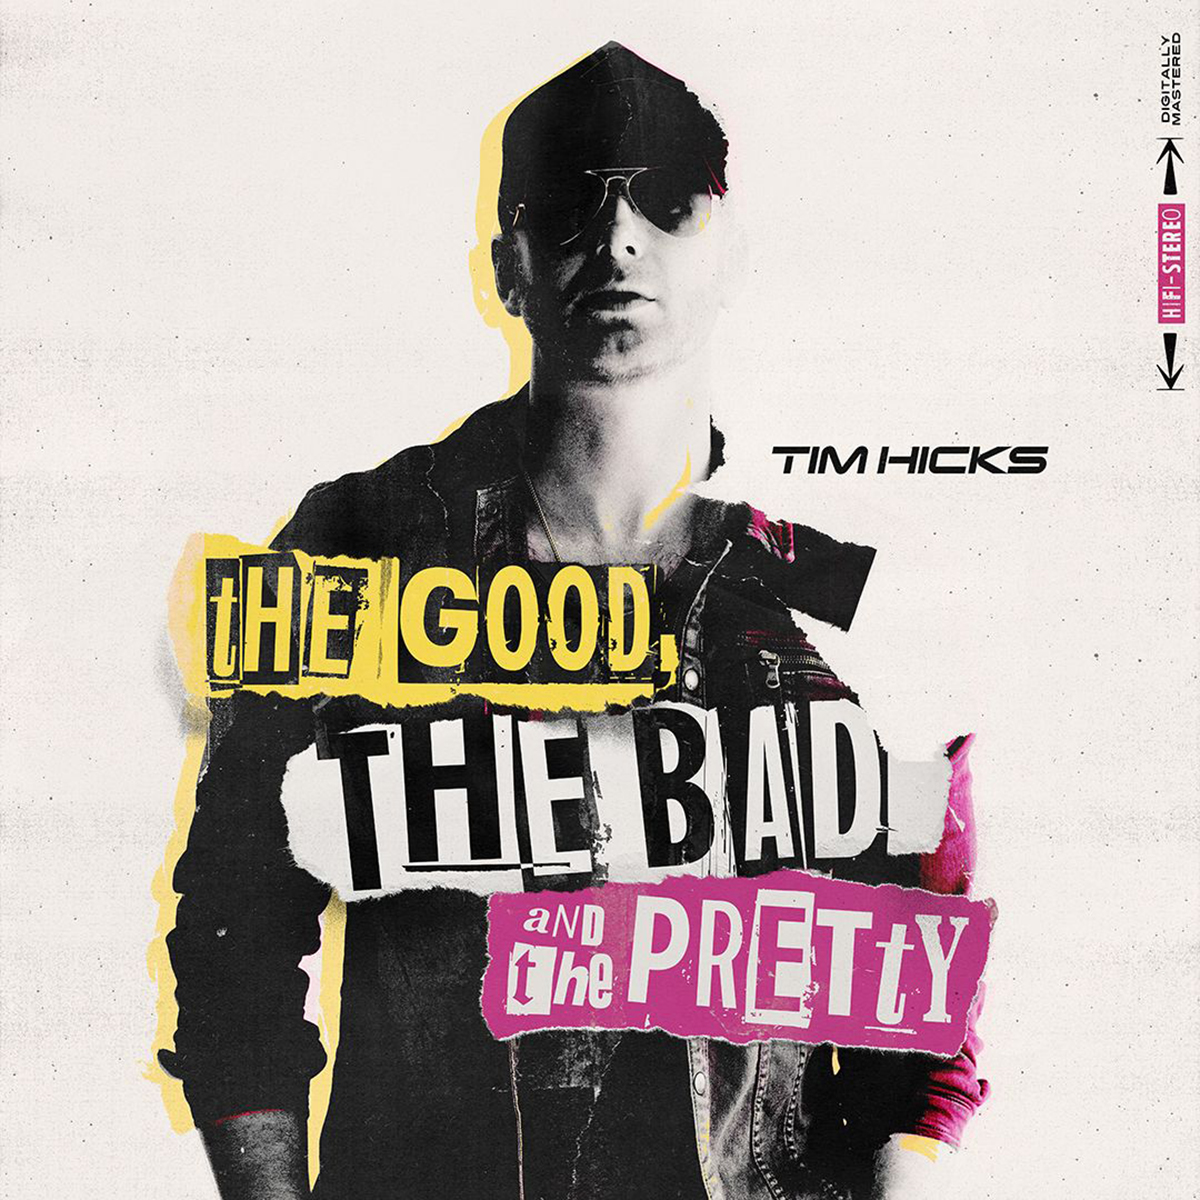 Tim Hicks The Good The Bad and The Pretty